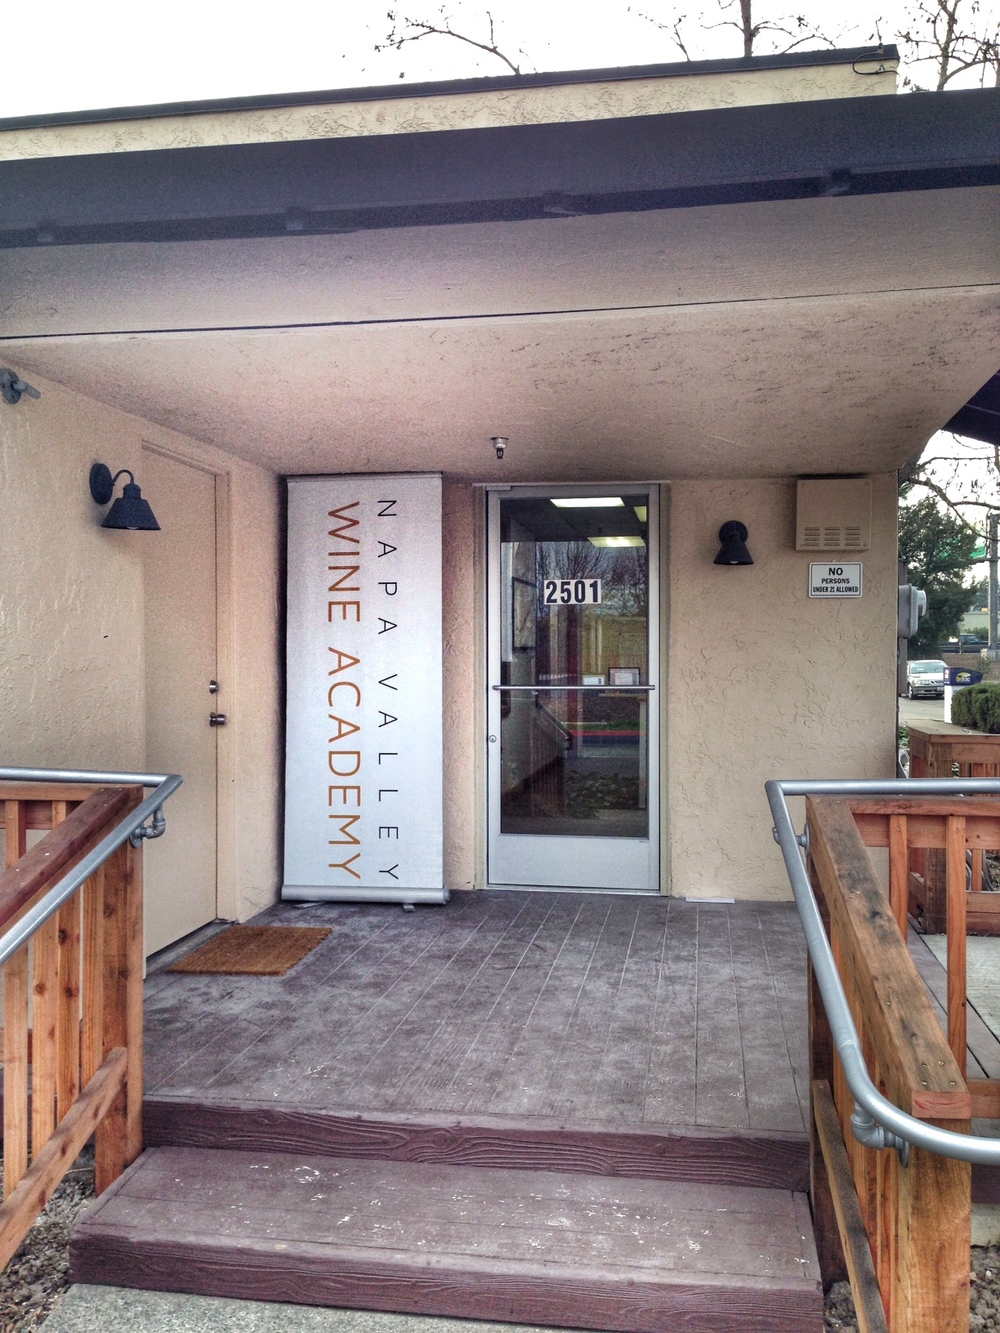 The NVWA is located at 2501 Oak Street in Napa, CA.